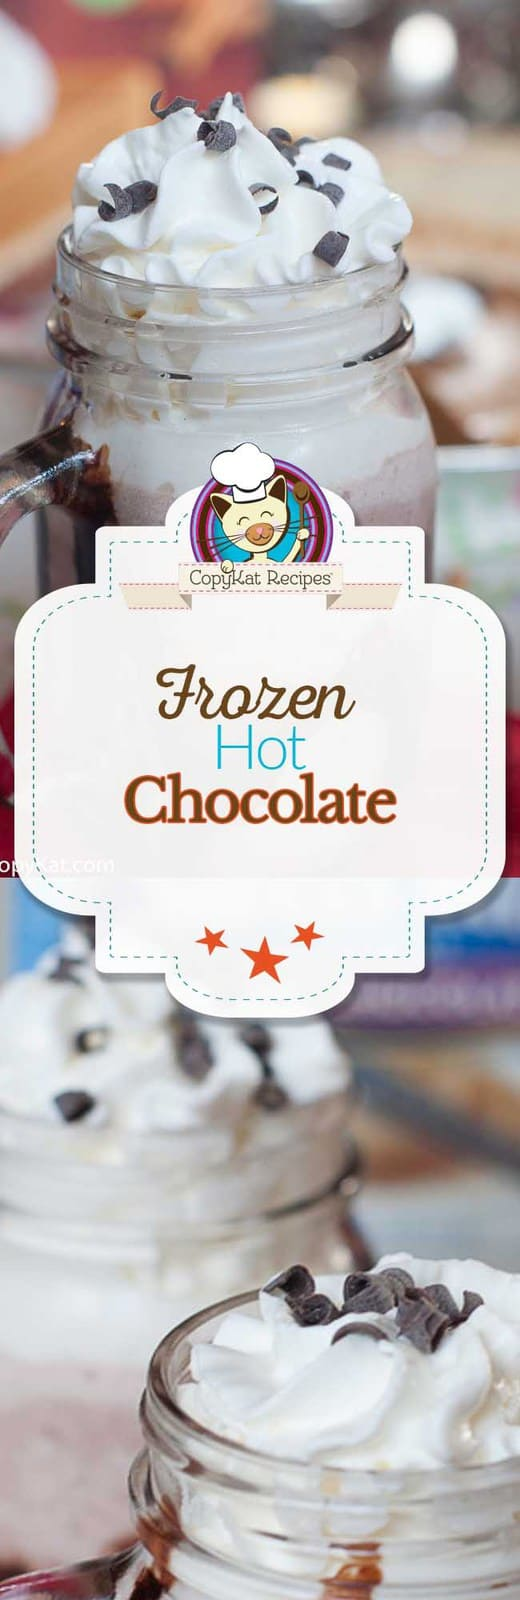 Enjoy Frozen Hot Chocolate!  It's super fun to make, and is a fun way to enjoy a winter classic.